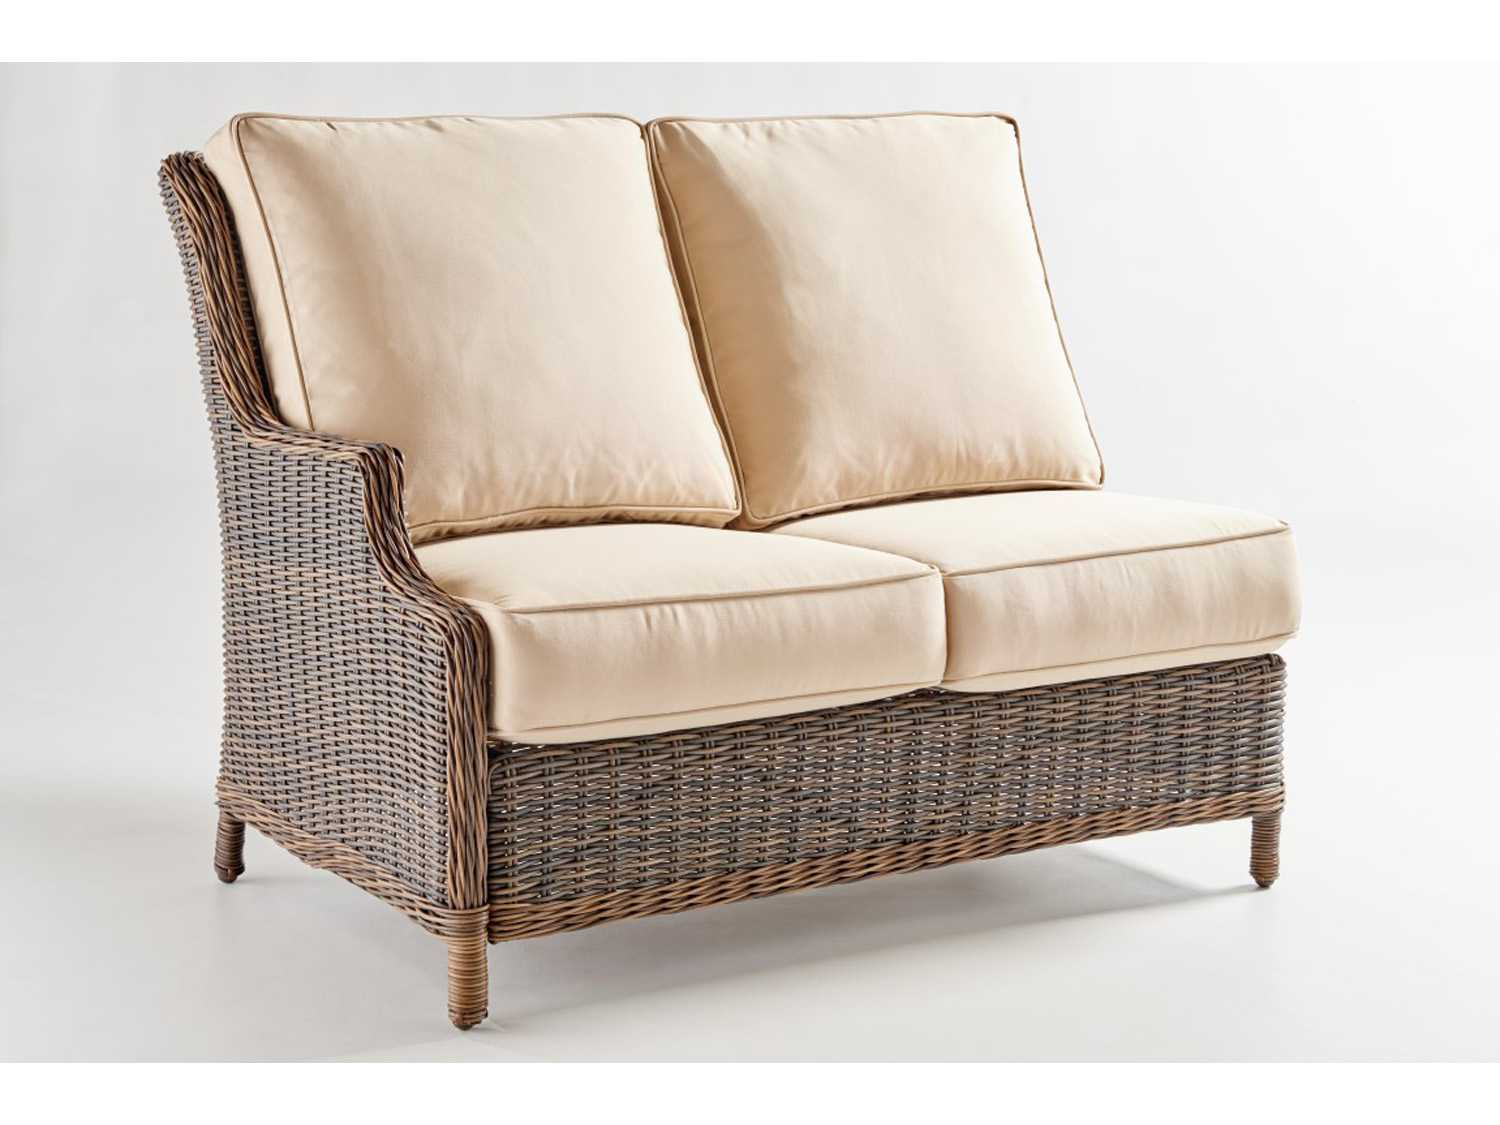 barrington chat The barrington collection defines classic design made for today shapely arms, winged backs and rich, chestnut synthetic wicker is expertly woven over durable aluminum framing this timeless collection features conventional seating and sectional options, plus the dining chat table to combine lounging and dining.